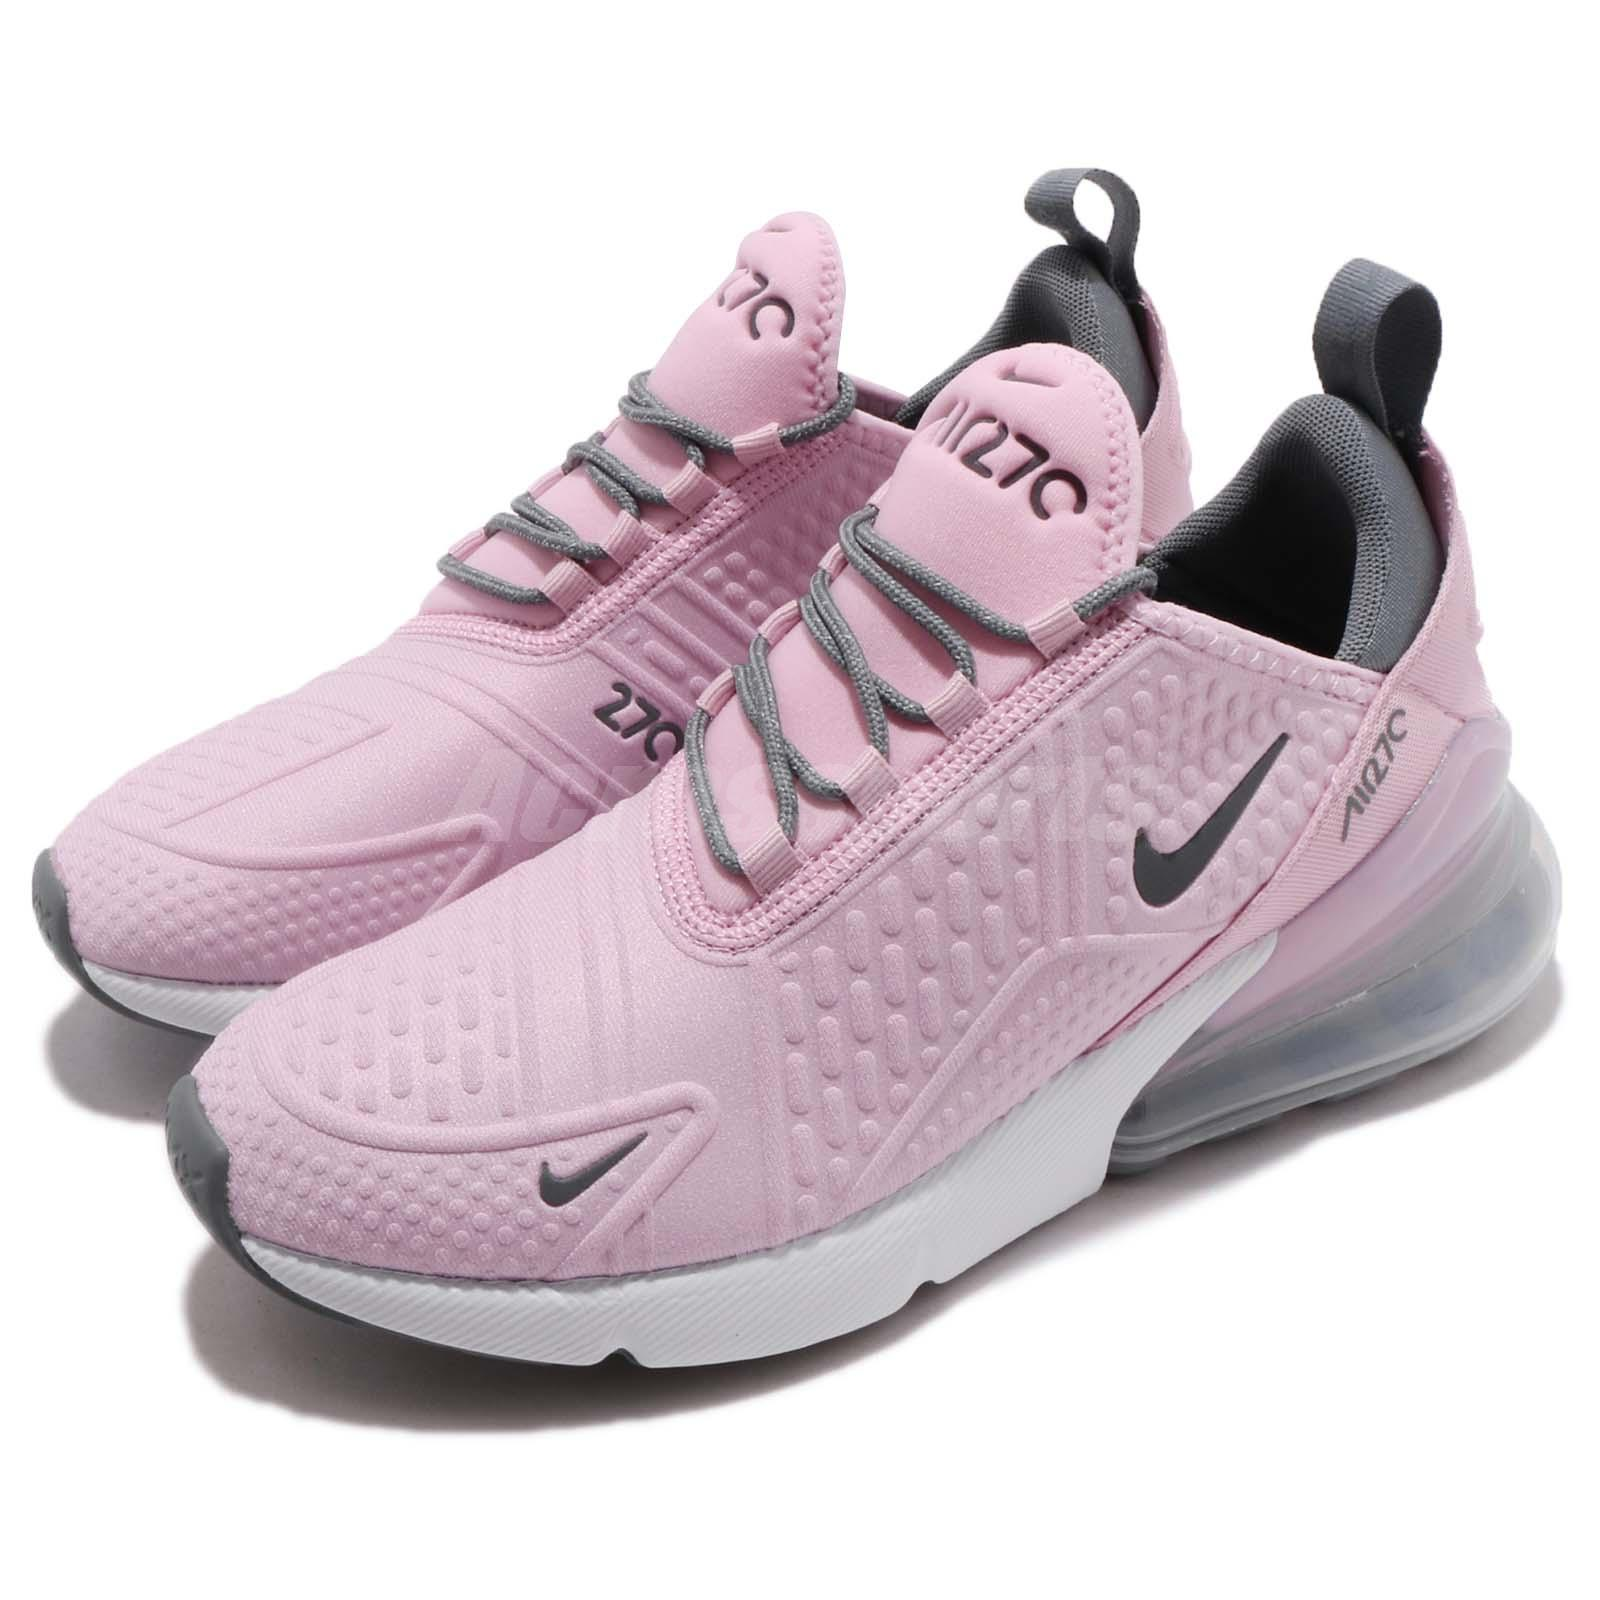 purchase cheap fbaf5 35228 Details about Nike Air Max 270 SE GS Pink Grey White Kid Youth Women  Running Shoes AQ2654-600